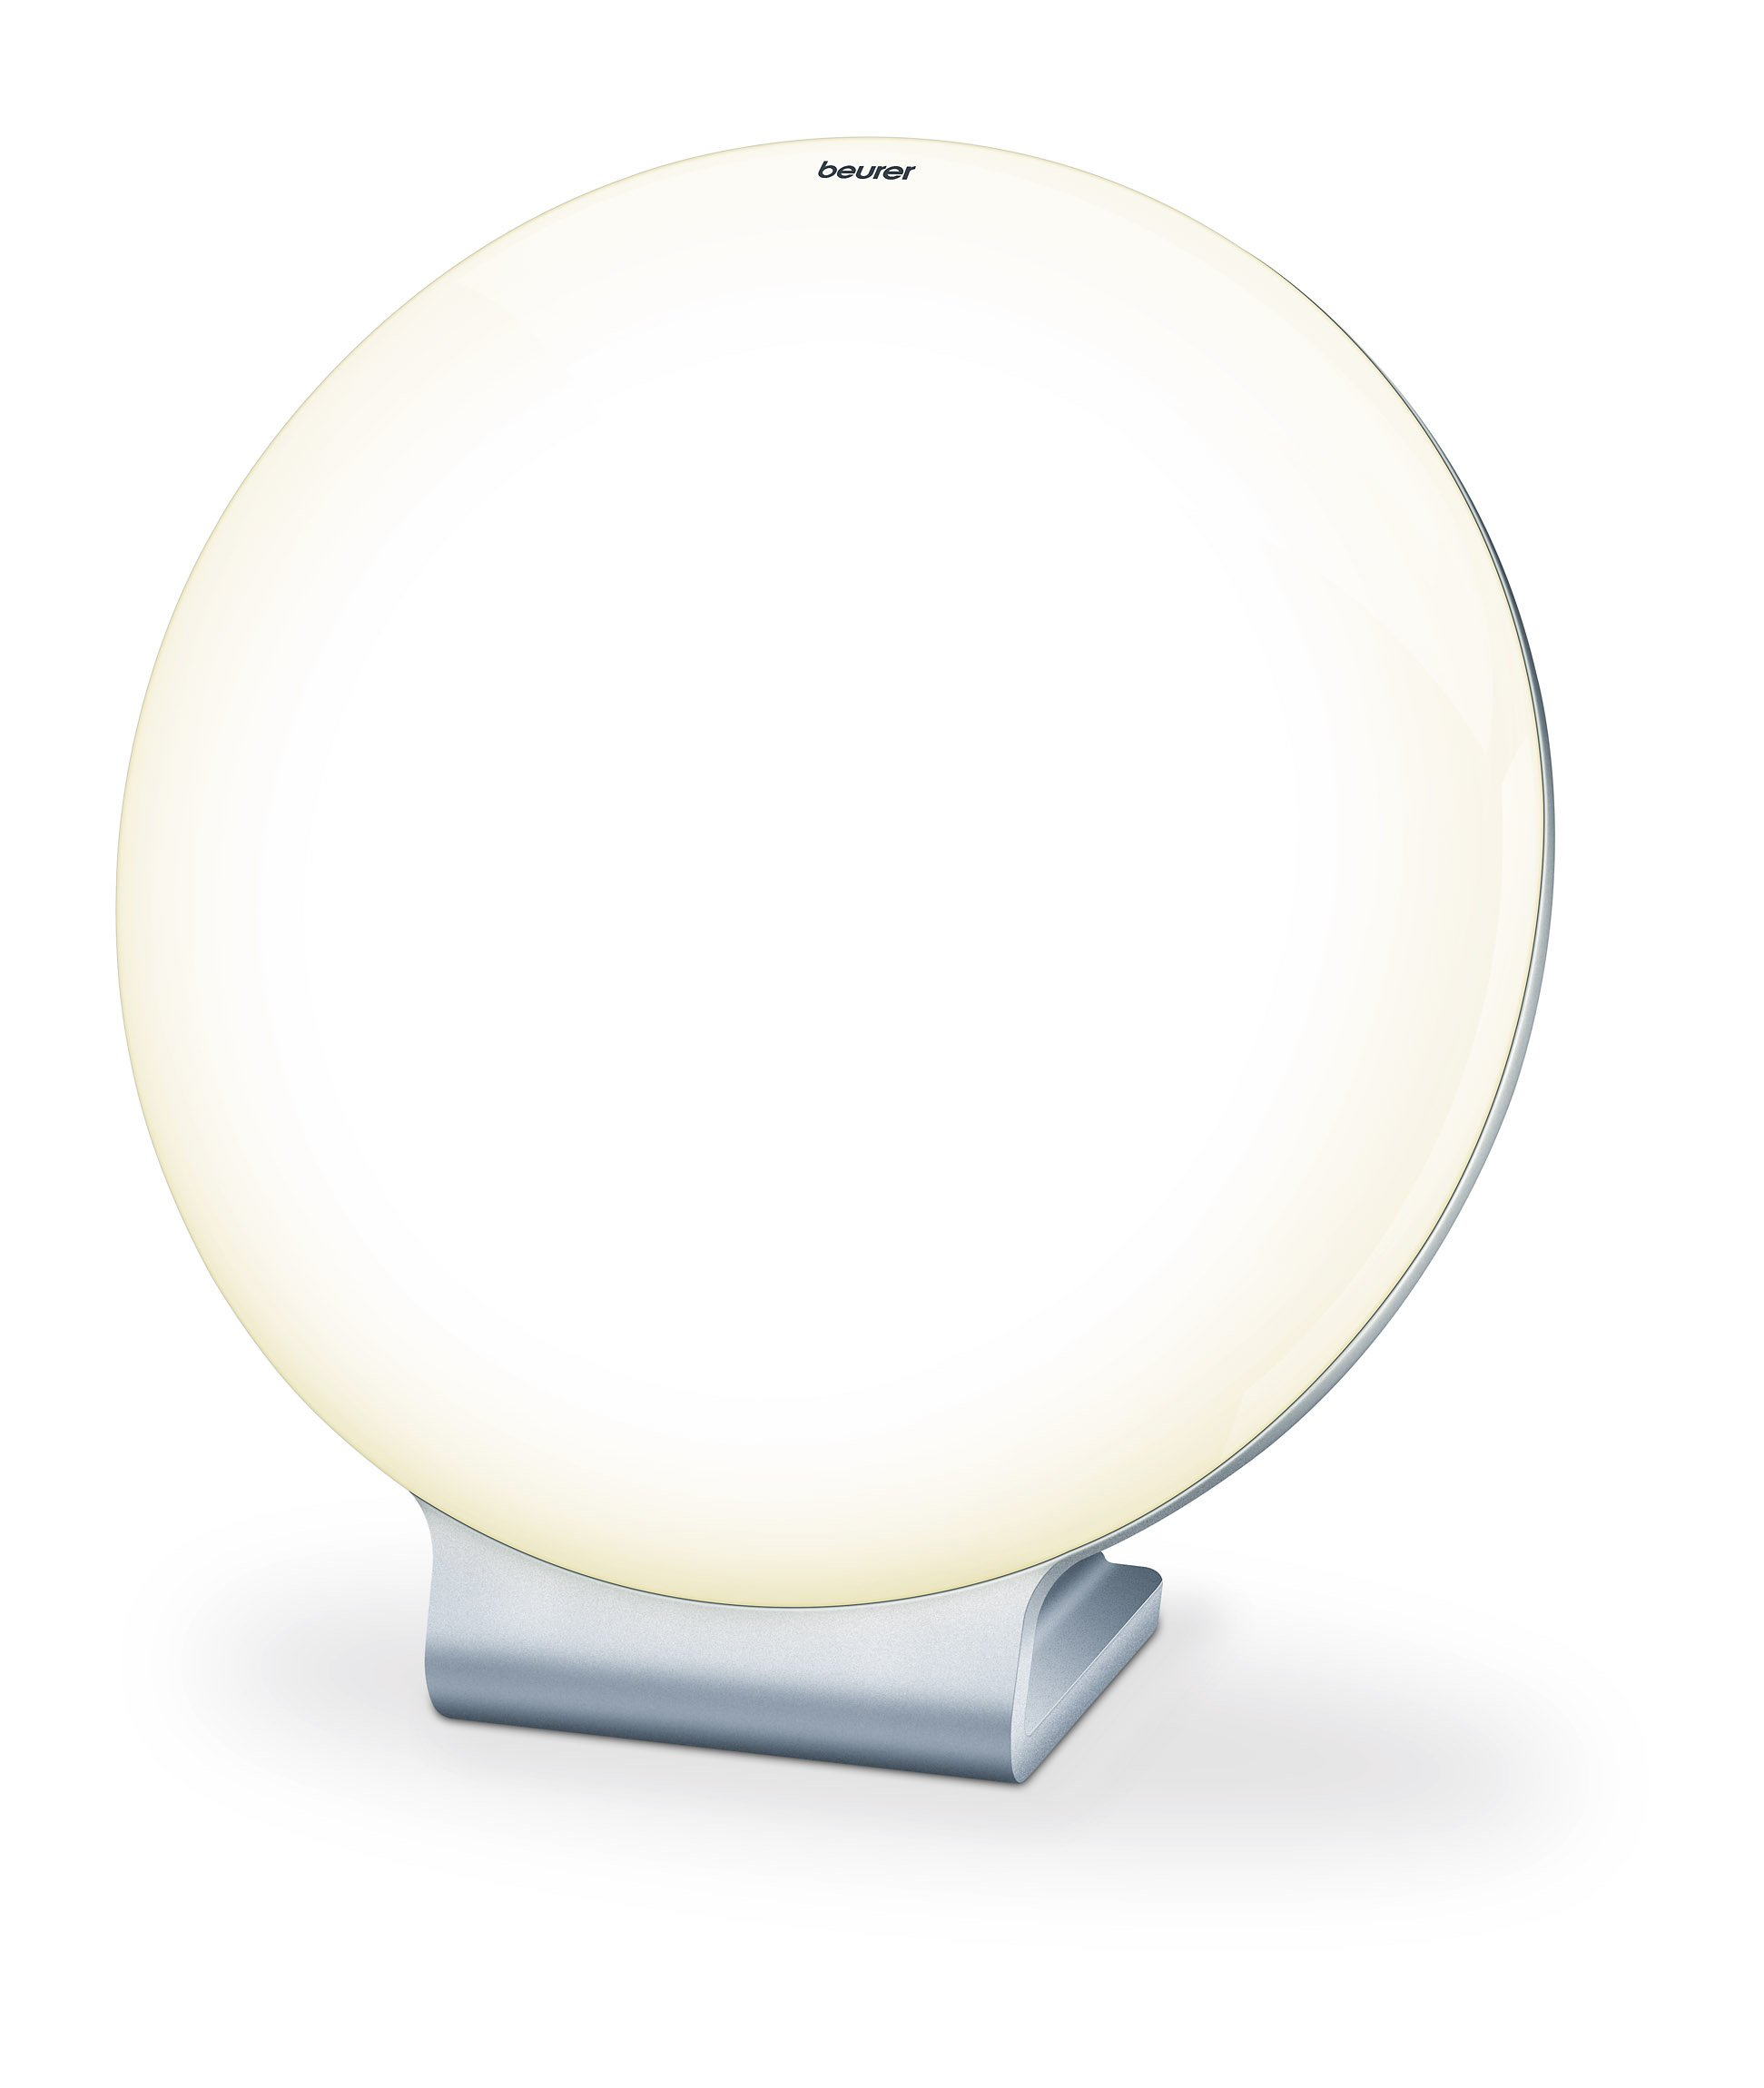 Beurer Daylight Lamp, Portable Light Therapy for Your Office, Home or Travel, with Exceptionally Bright Natural Sunlight Simulation, UV-Free, 10,000 LUX from 15 CM, TL50